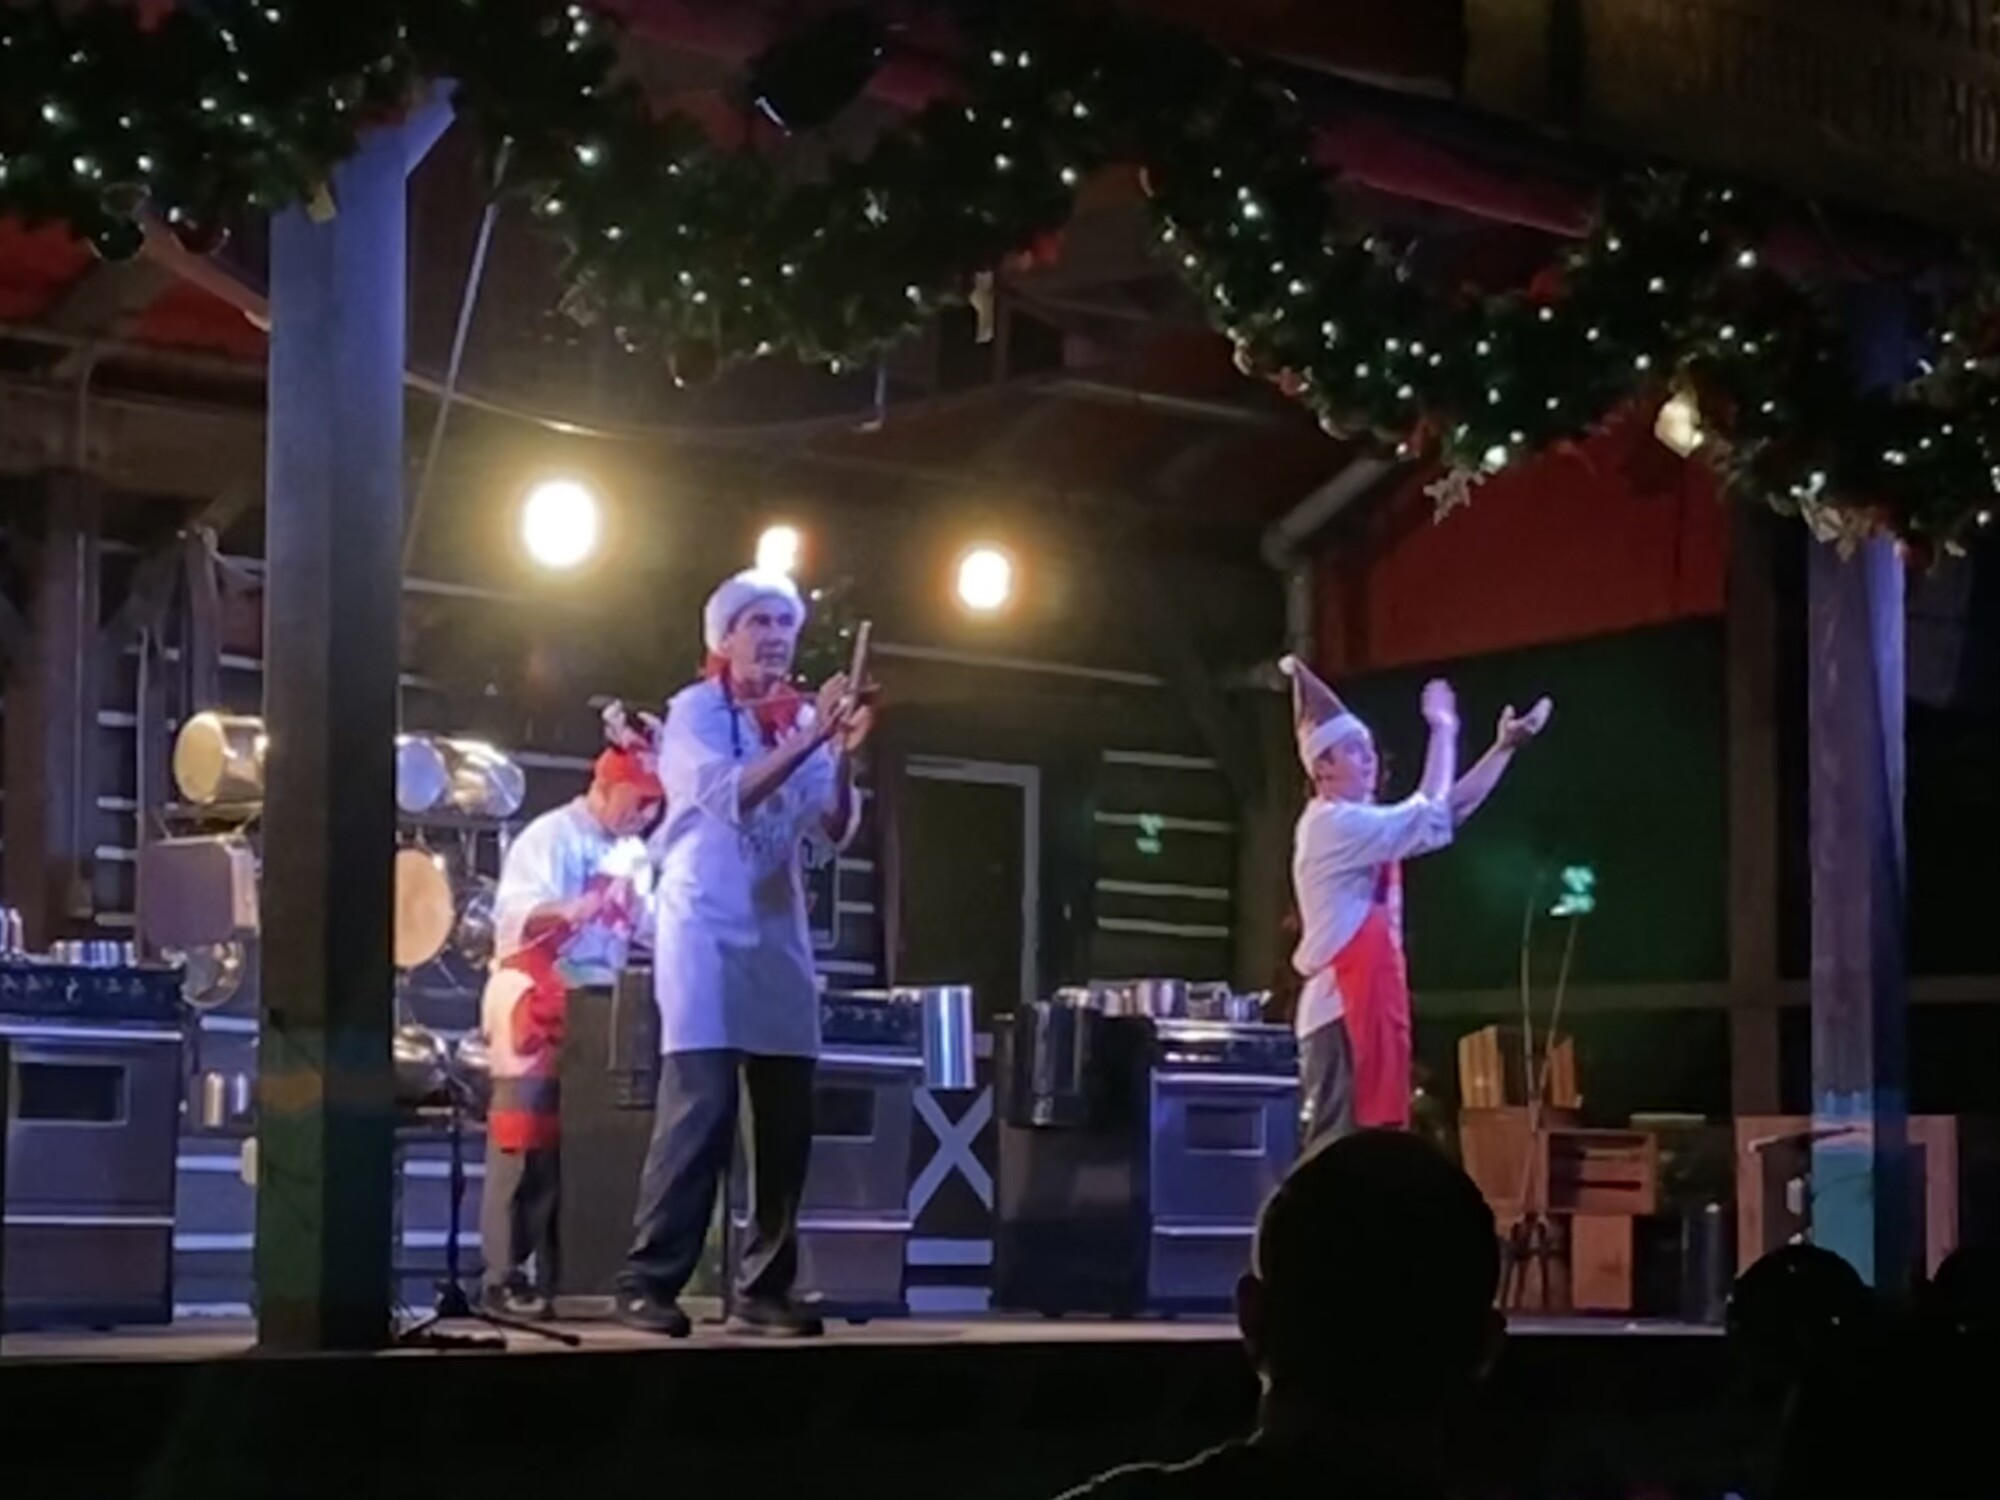 Photos from Opening Weekend at the Epcot International Festival of the Holidays 8